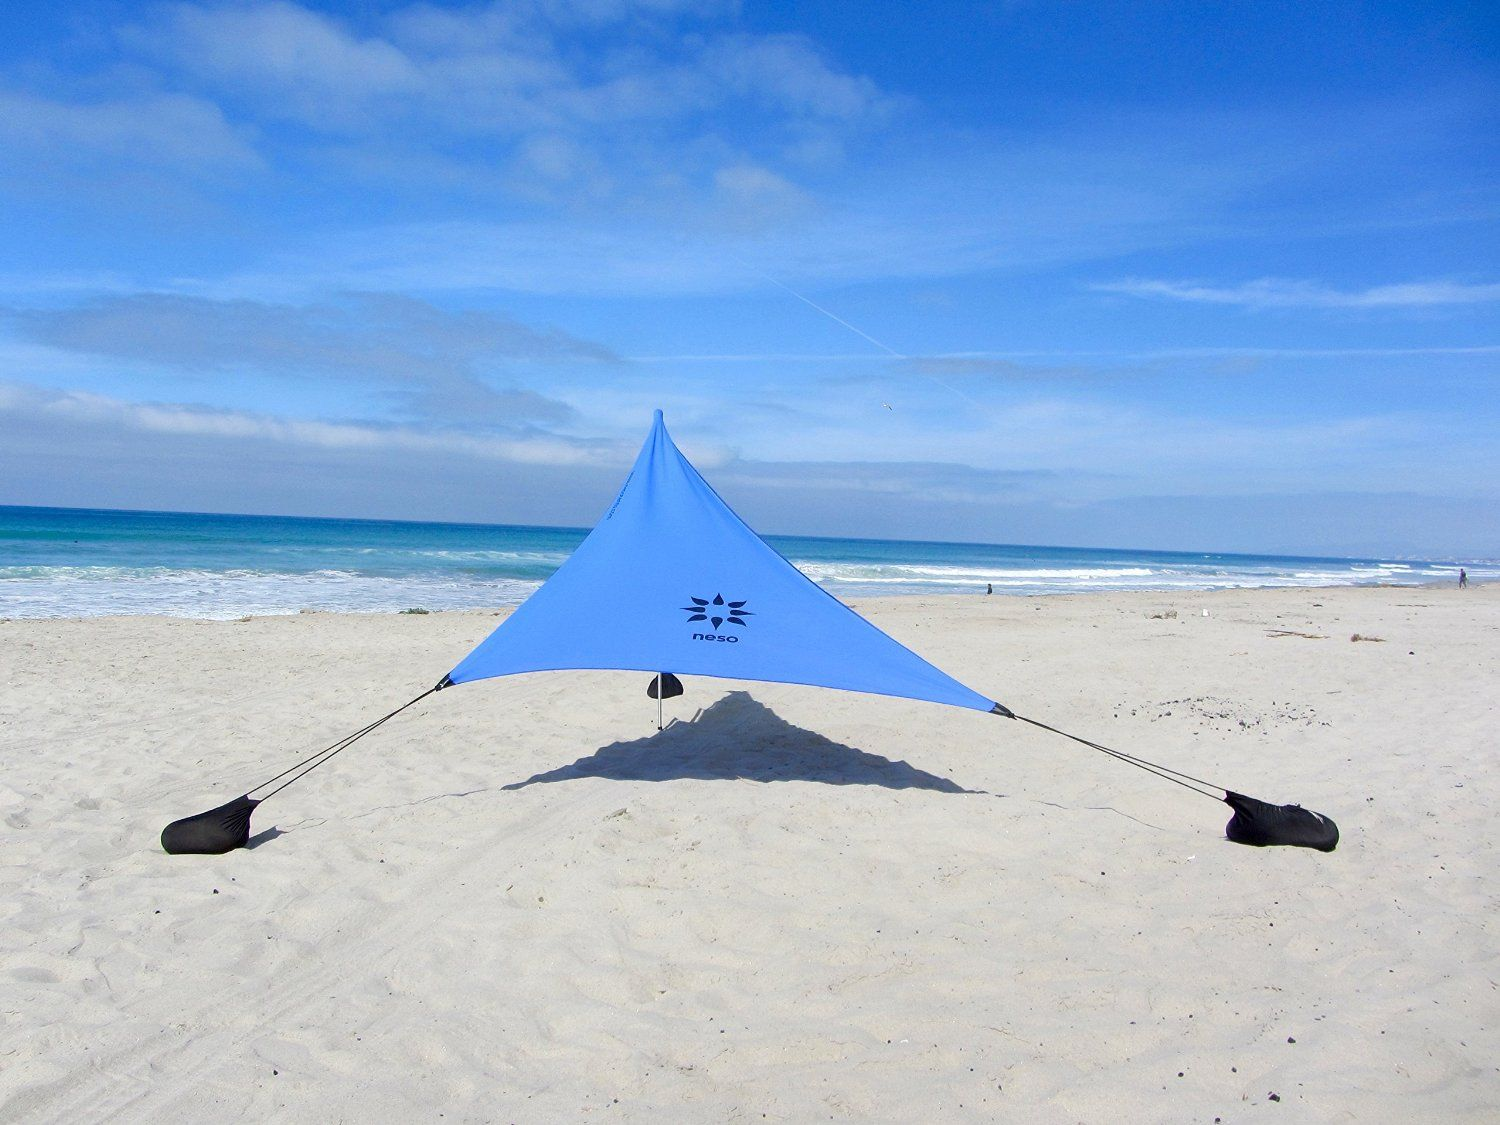 Amazon.com NESO TENTS MINI Beach Tent with Sand Anchor Portable Canopy for & Amazon.com: NESO TENTS MINI Beach Tent with Sand Anchor Portable ...